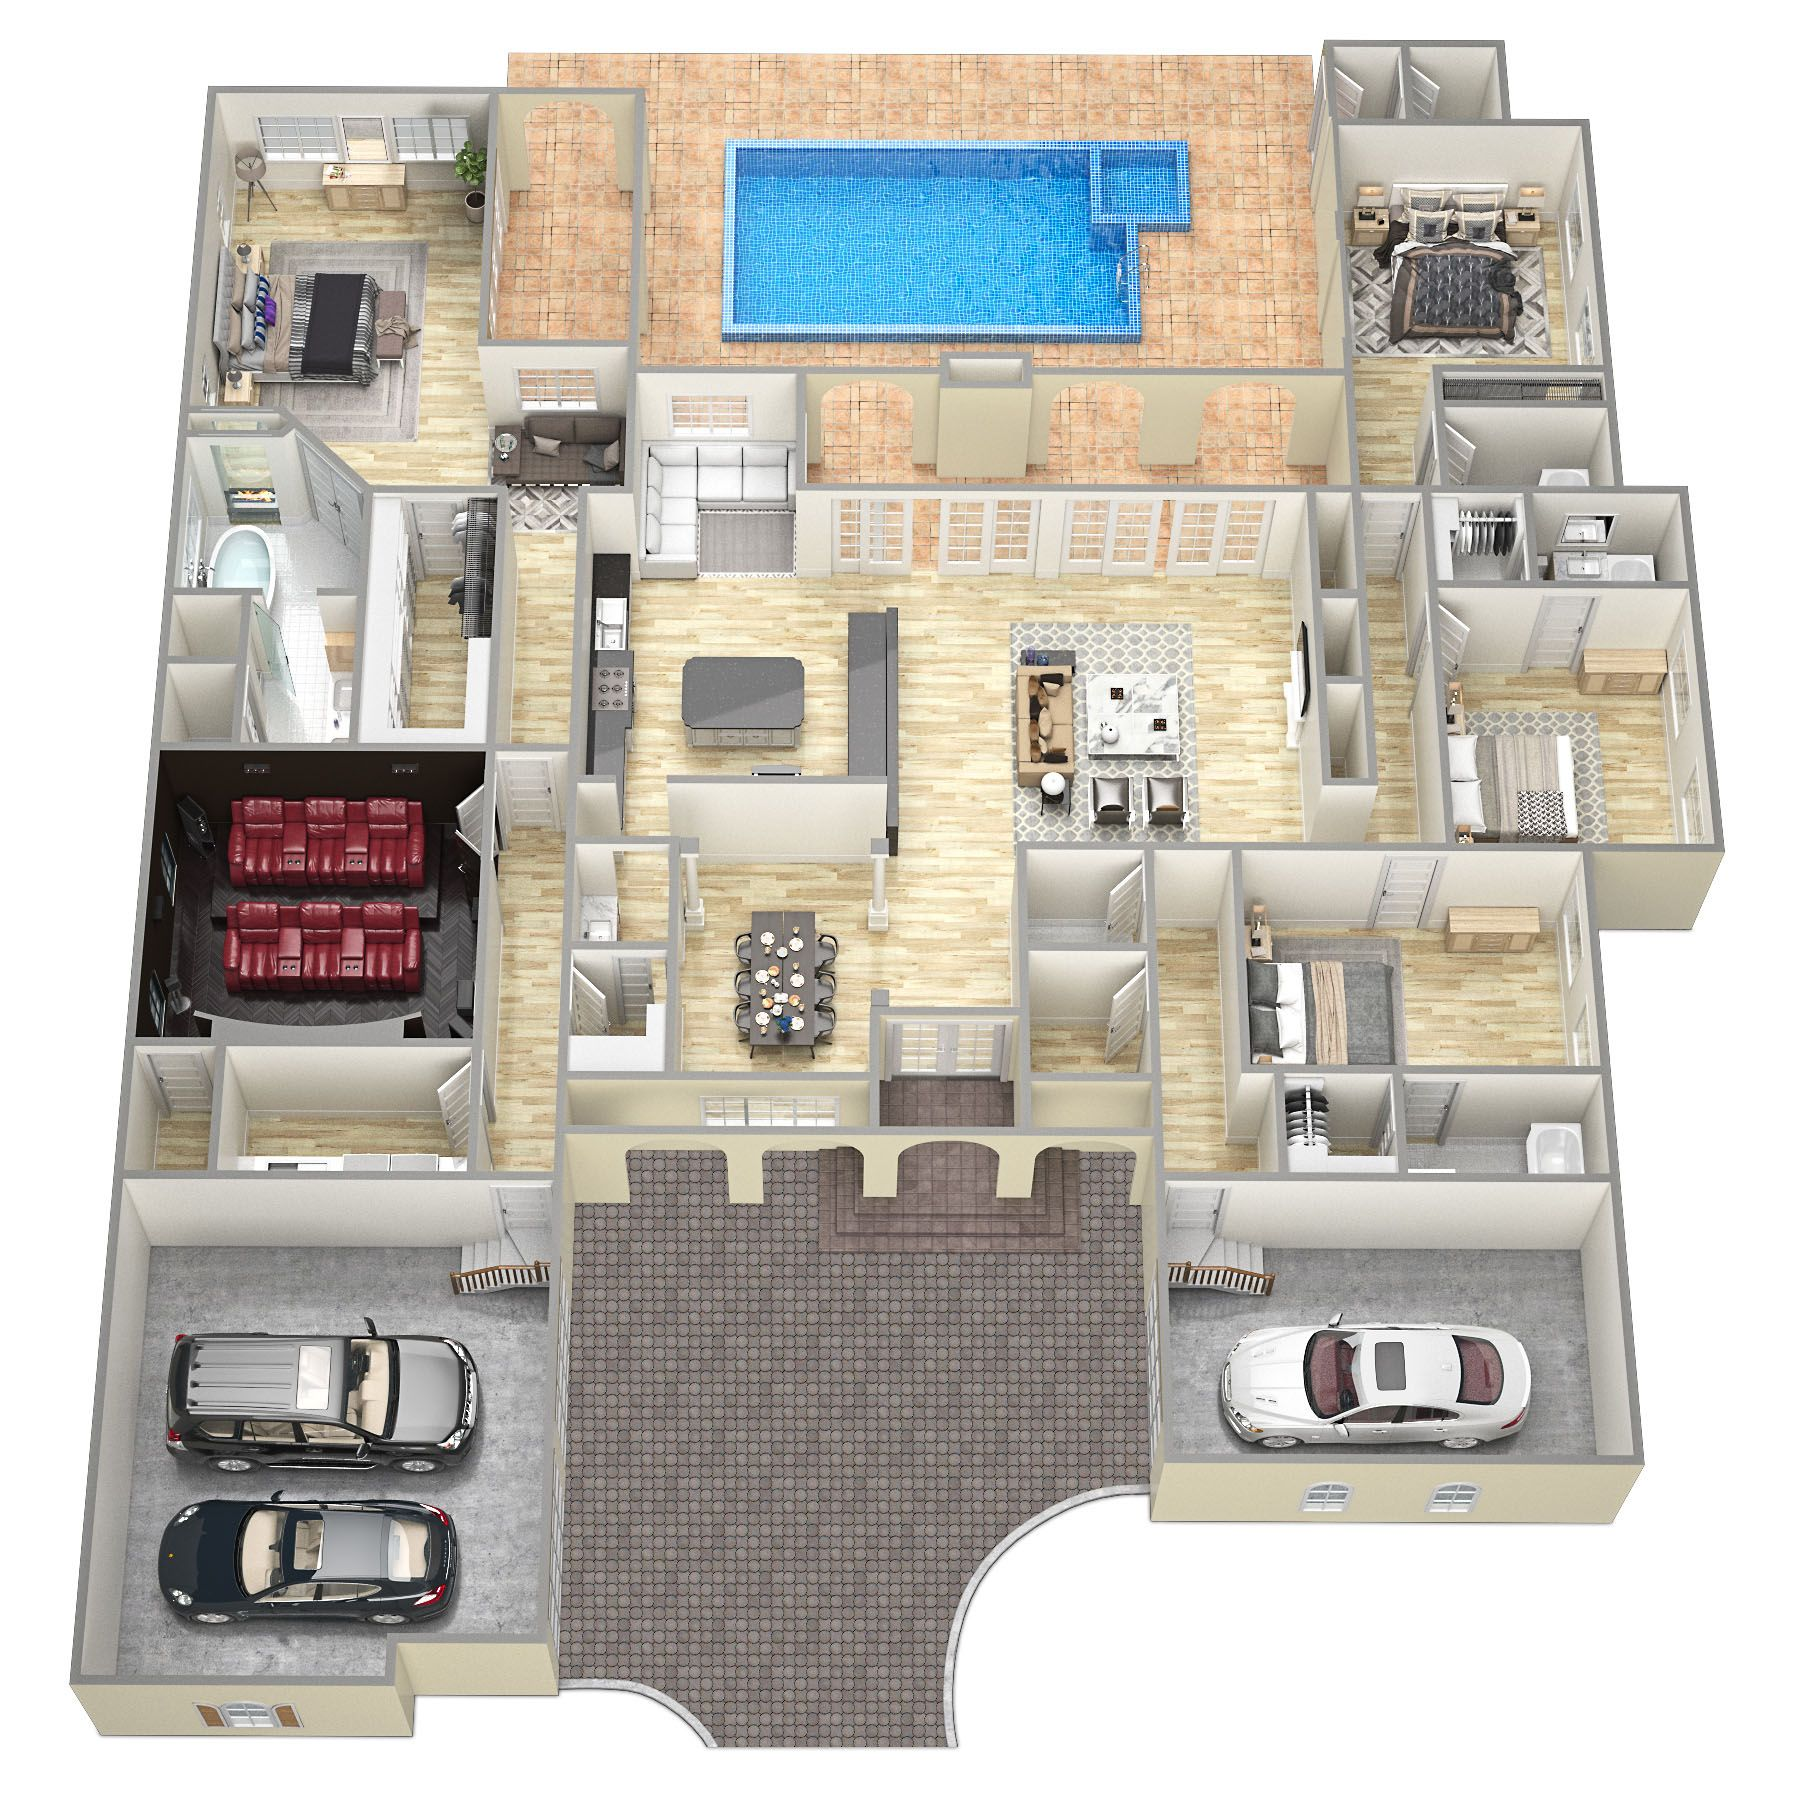 Holland perfect 3d floor plans sawyer sound property 3d floorplan illustration was created for